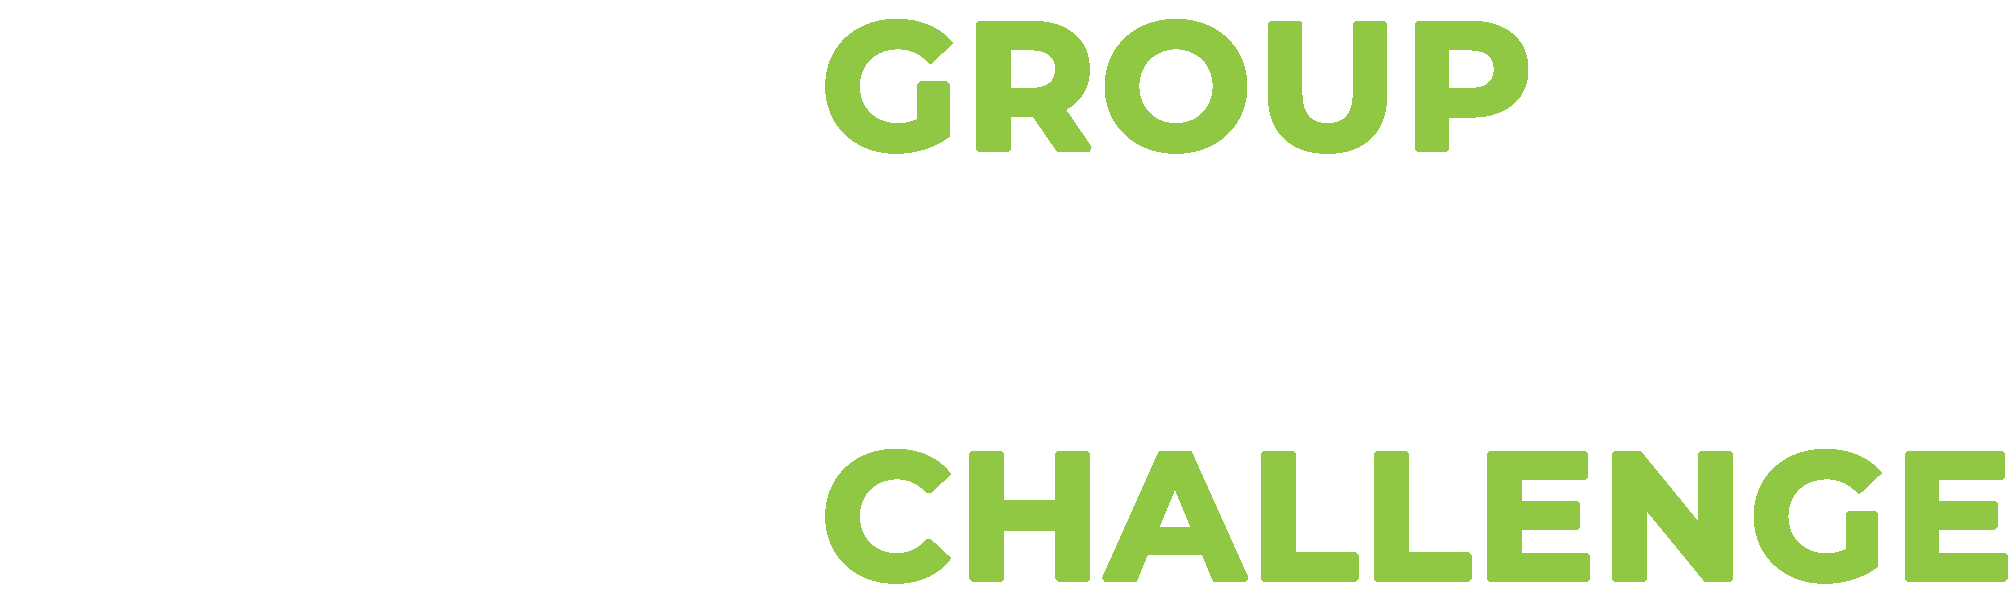 IWO Group Slimdown Challenge.png